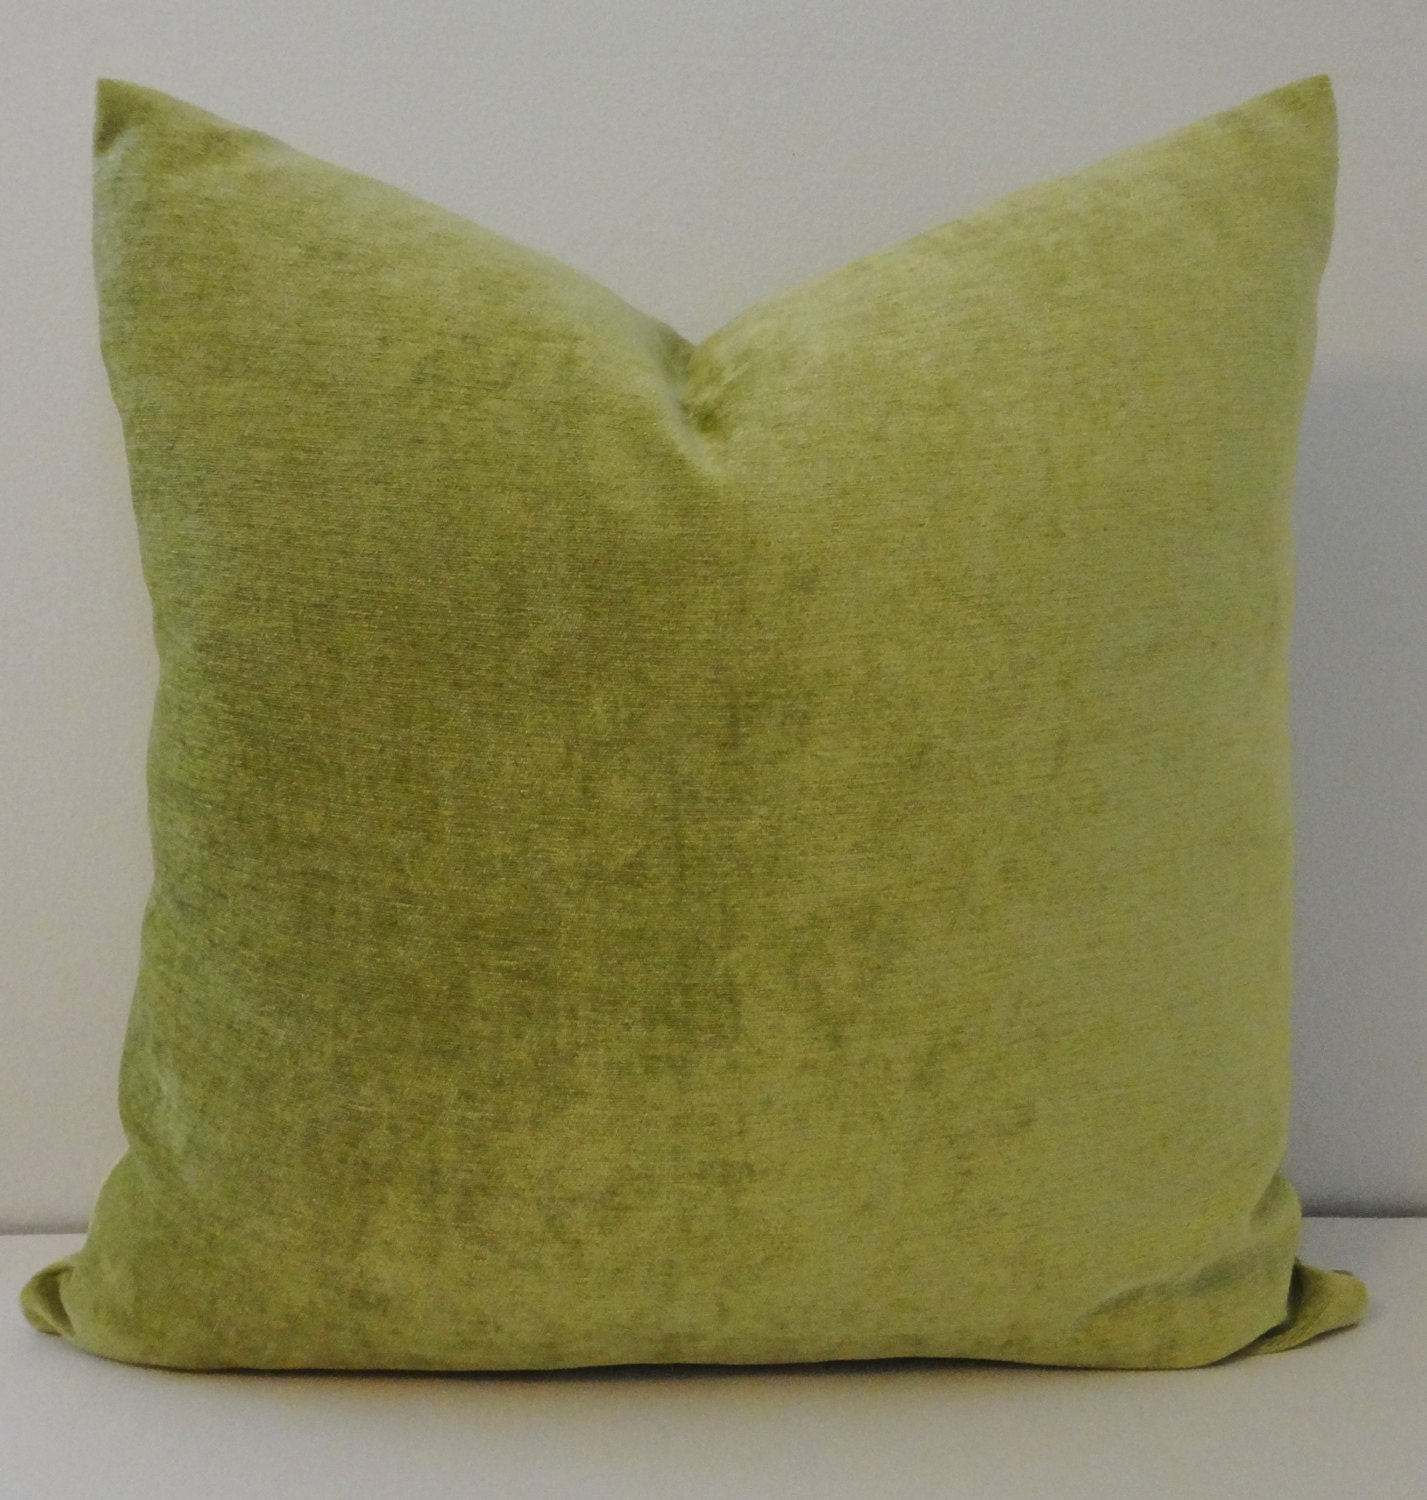 Apple Green Velour Pillow Decorative Pillow Cover Solid Green